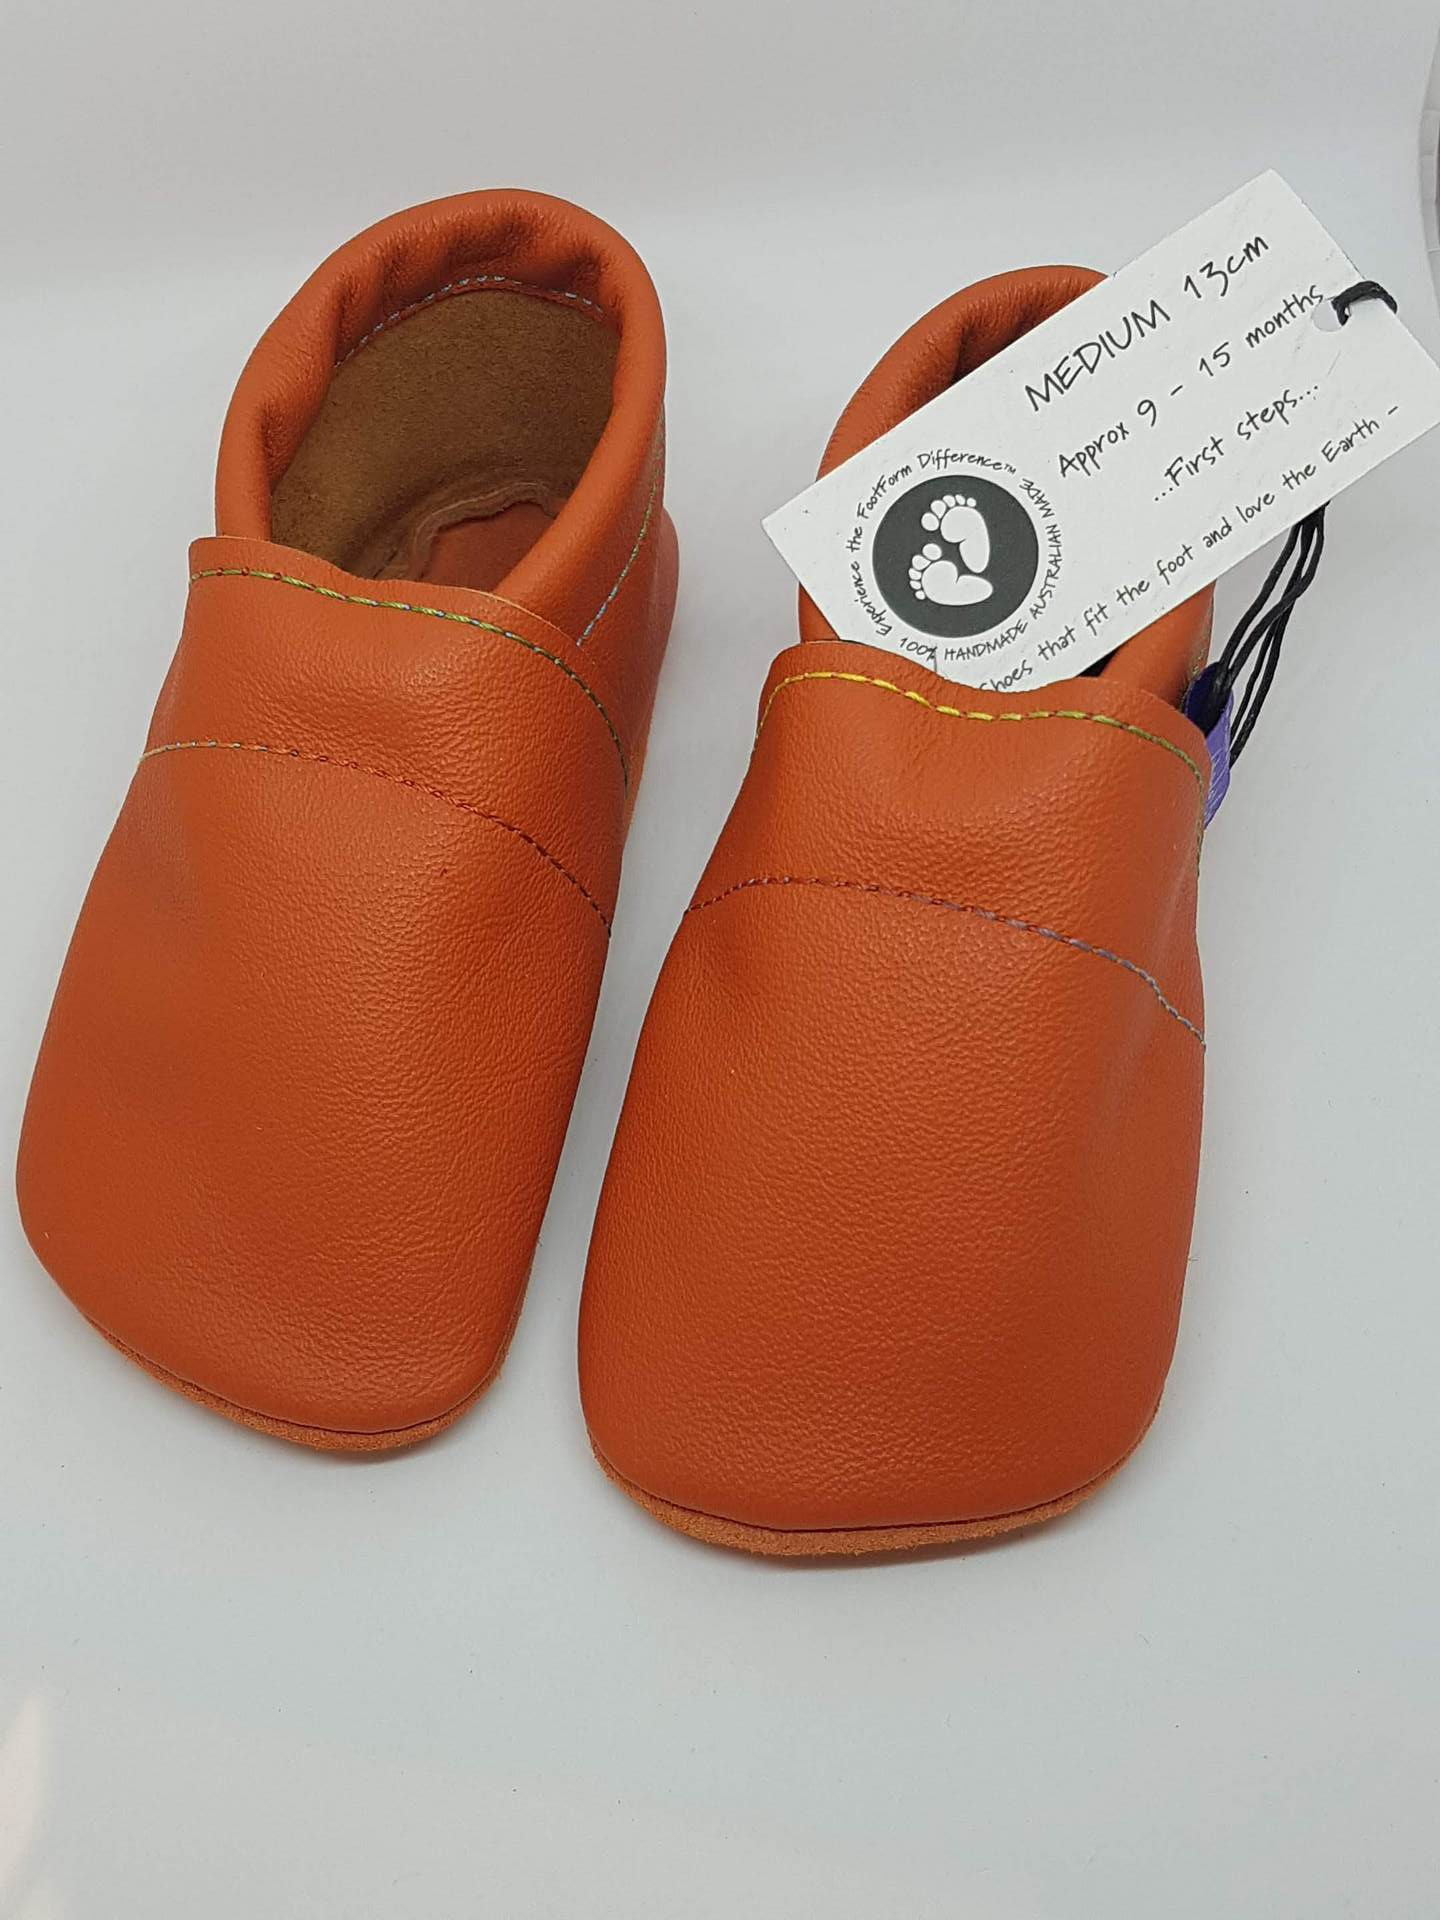 Bright Orange Leather Toddler Shoes with Rainbow Stitching